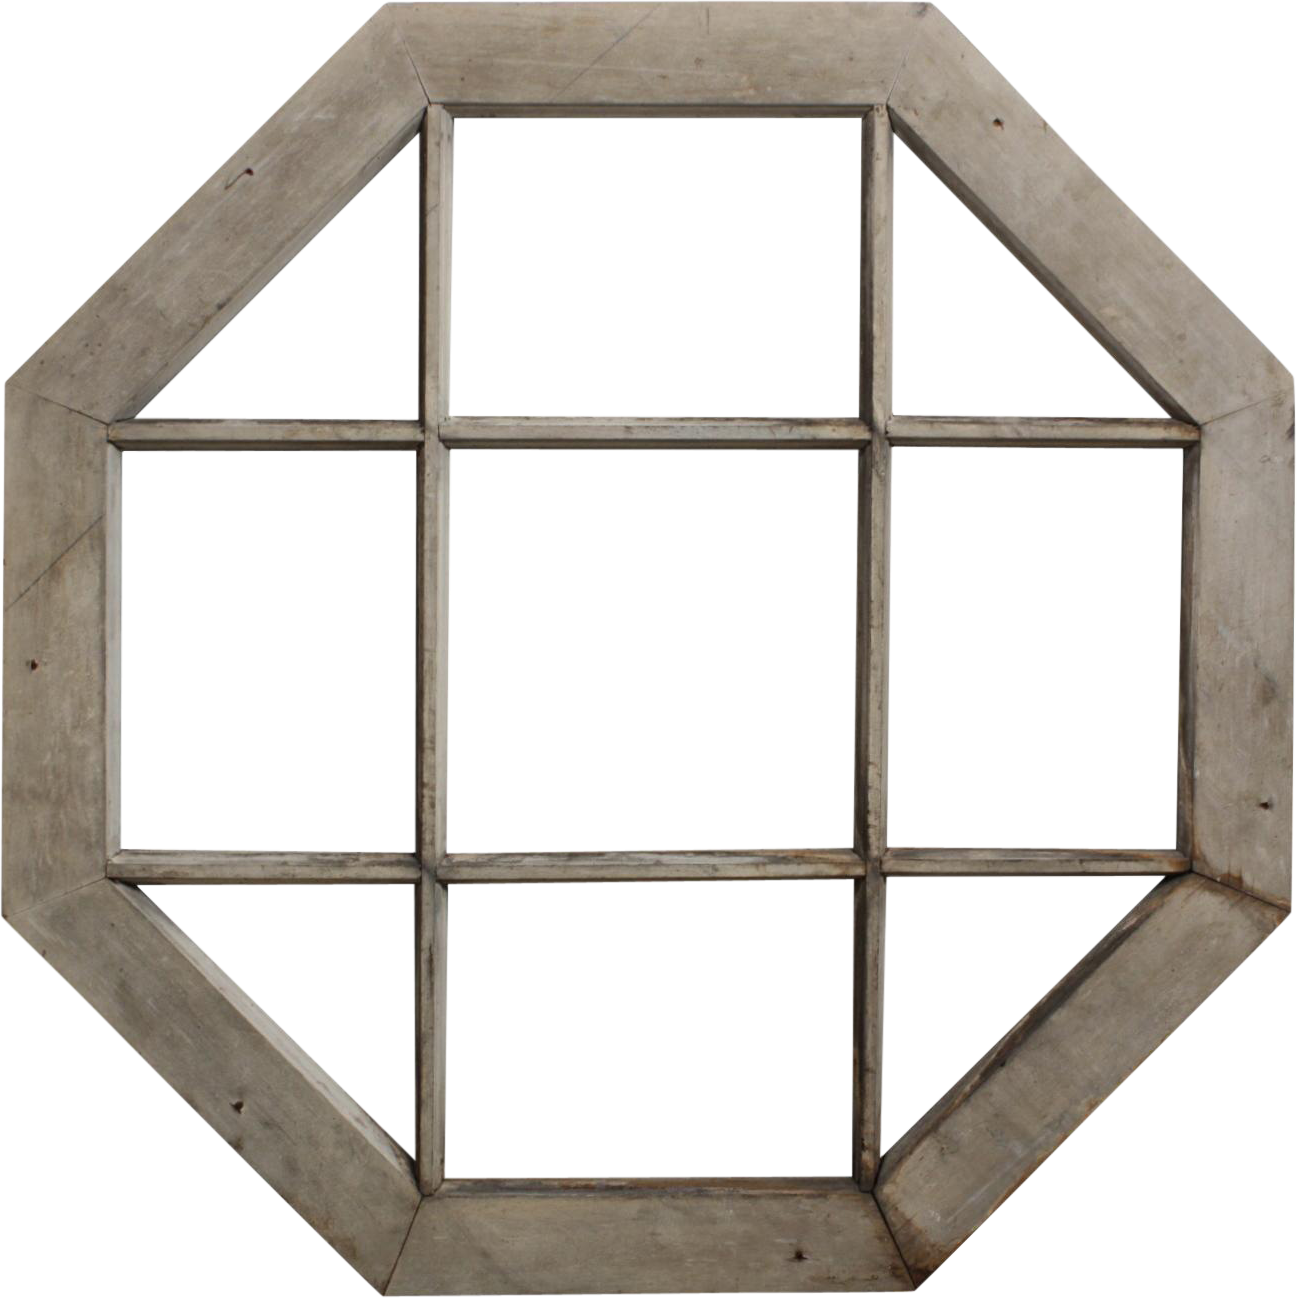 Wood Mullions For Windows : Charming antique octagonal window with wood mullions sold